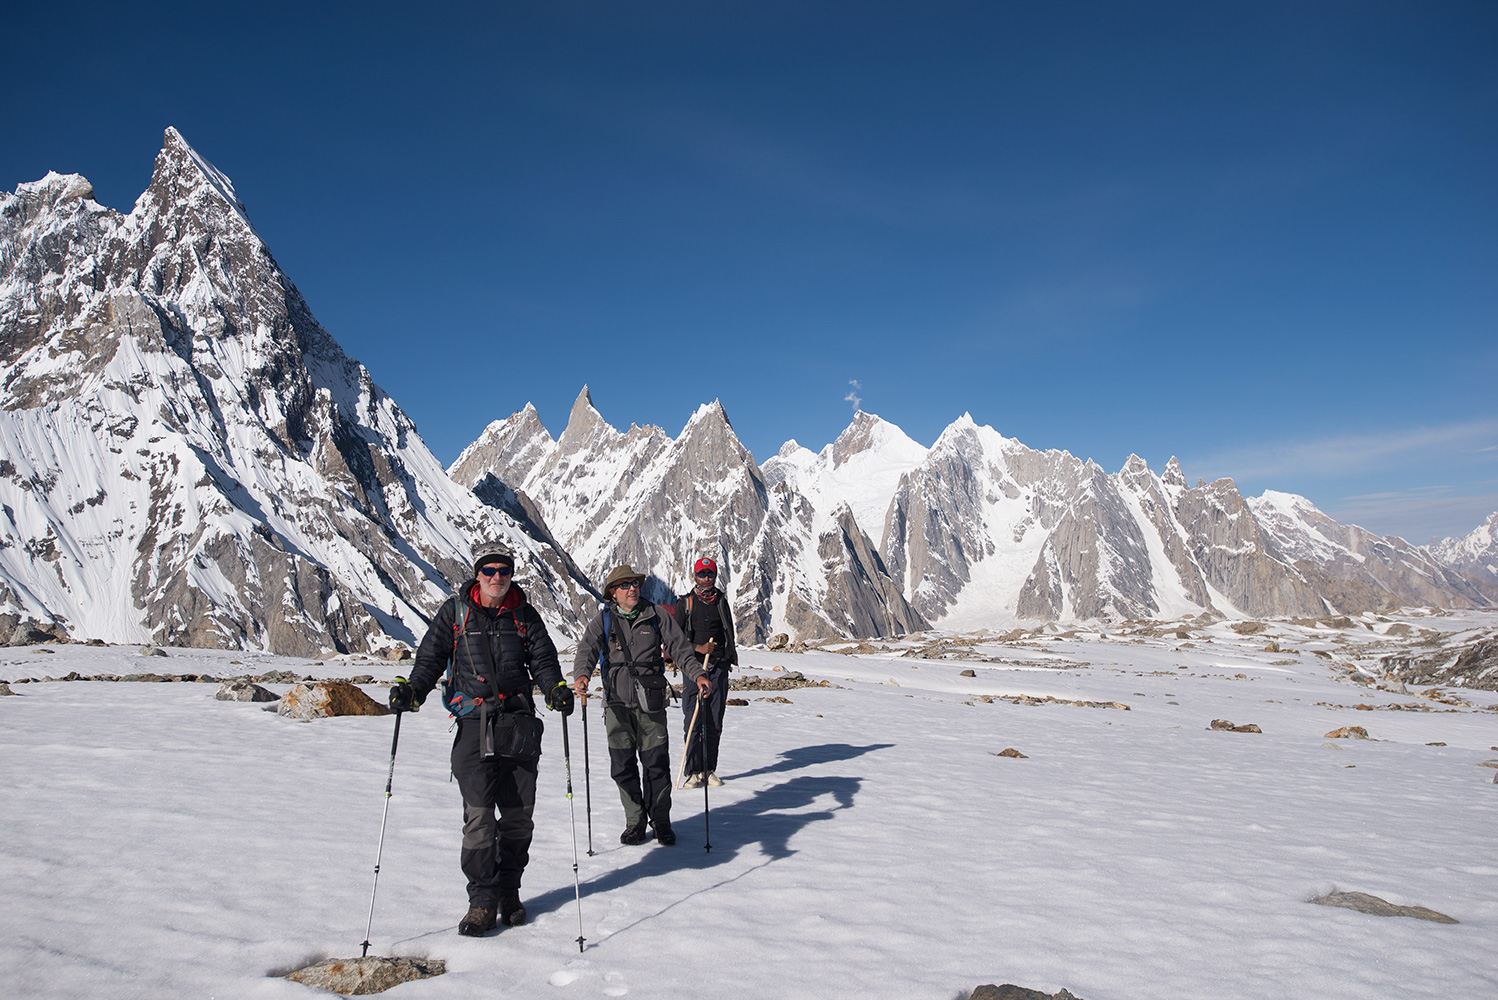 Trekking towards Broad Peak base camp with Mitre Peak (6010m) and Biarchedi (6781m) etc beyond. In this picture are Jim Hartill, Sandy Masson and Zulfikar